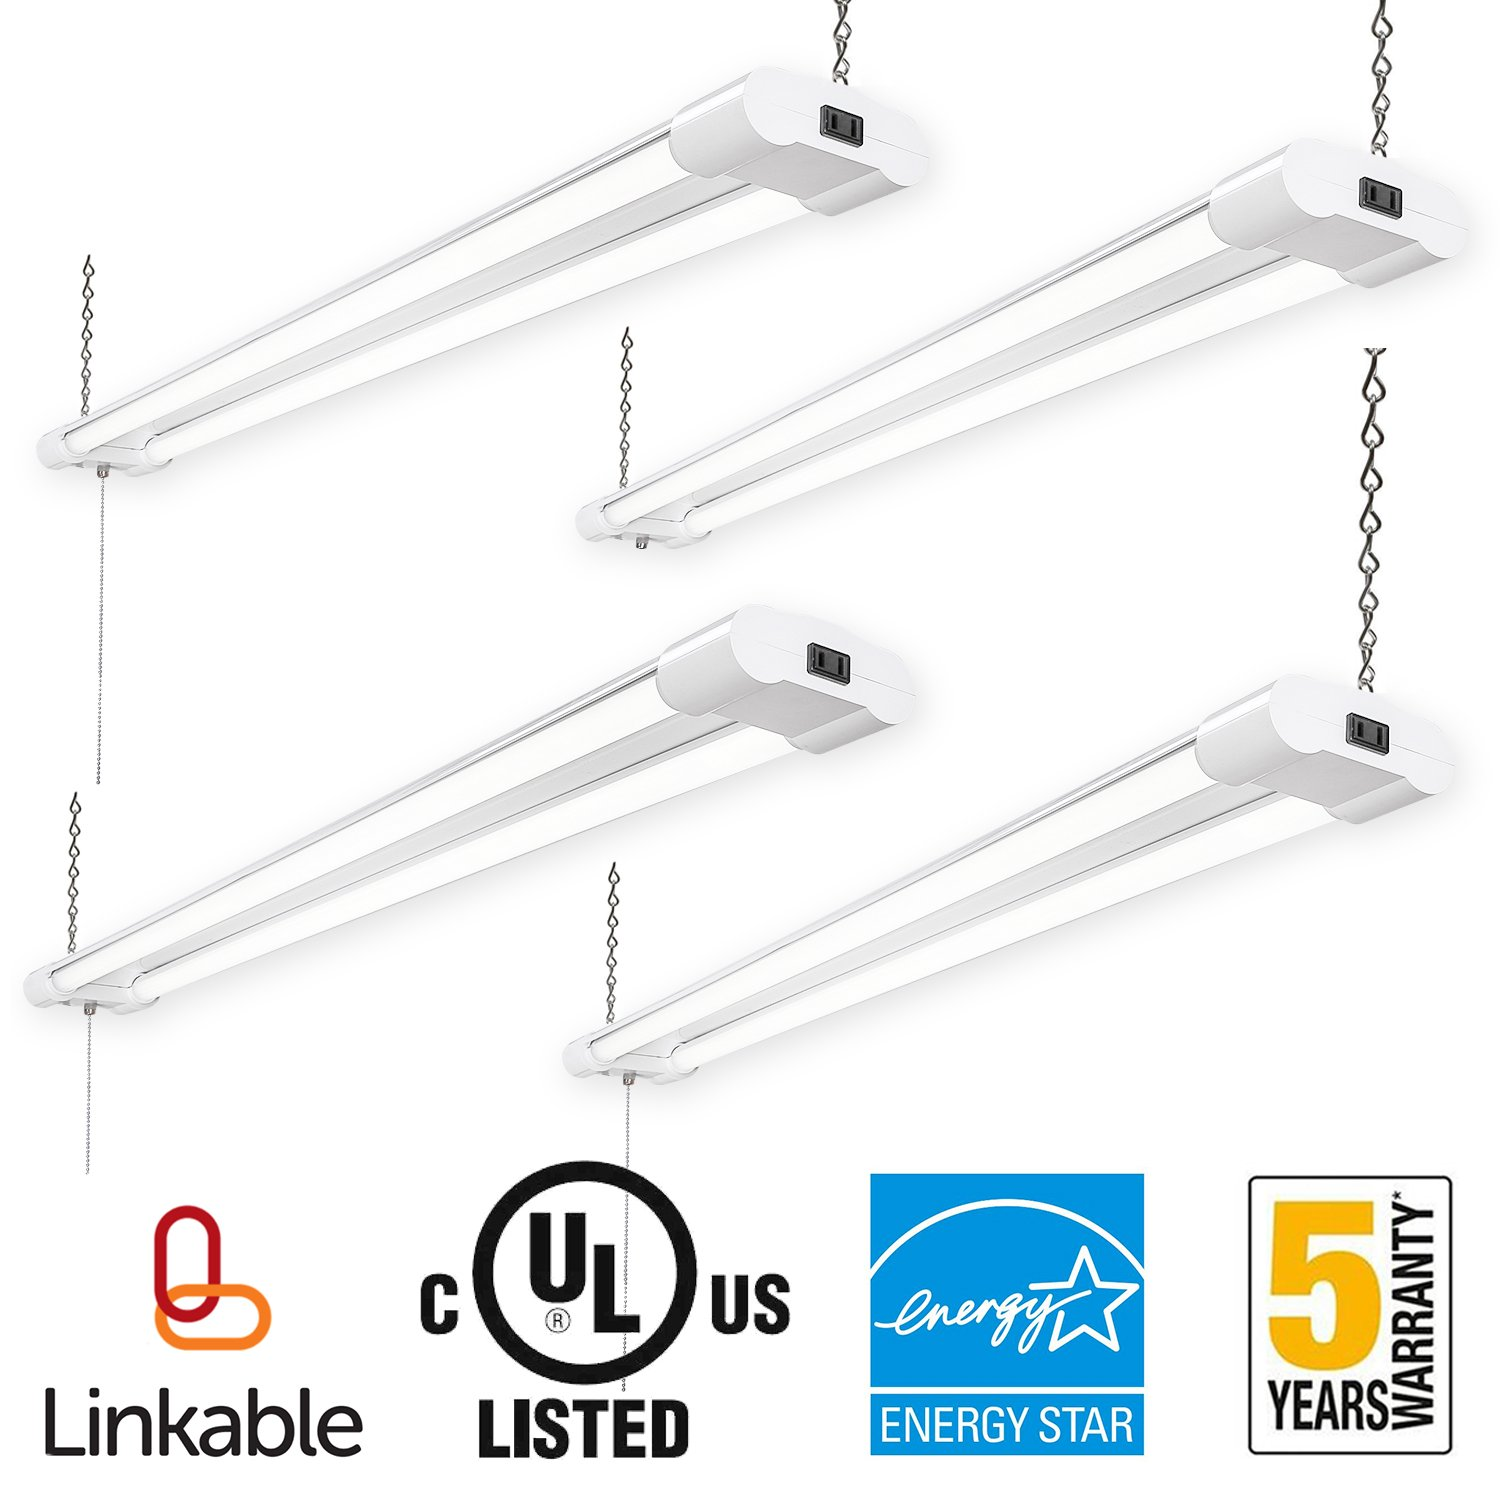 Amico Linkable 4FT LED Utility Shop Lights for Garage,40W Double Fixture UL and Energy Star,4000 Lumens 120W Eq. 5000K Daylight,Hanging lighting with Pull Chain Switch for Workshop Basement (4 pack) by Amico